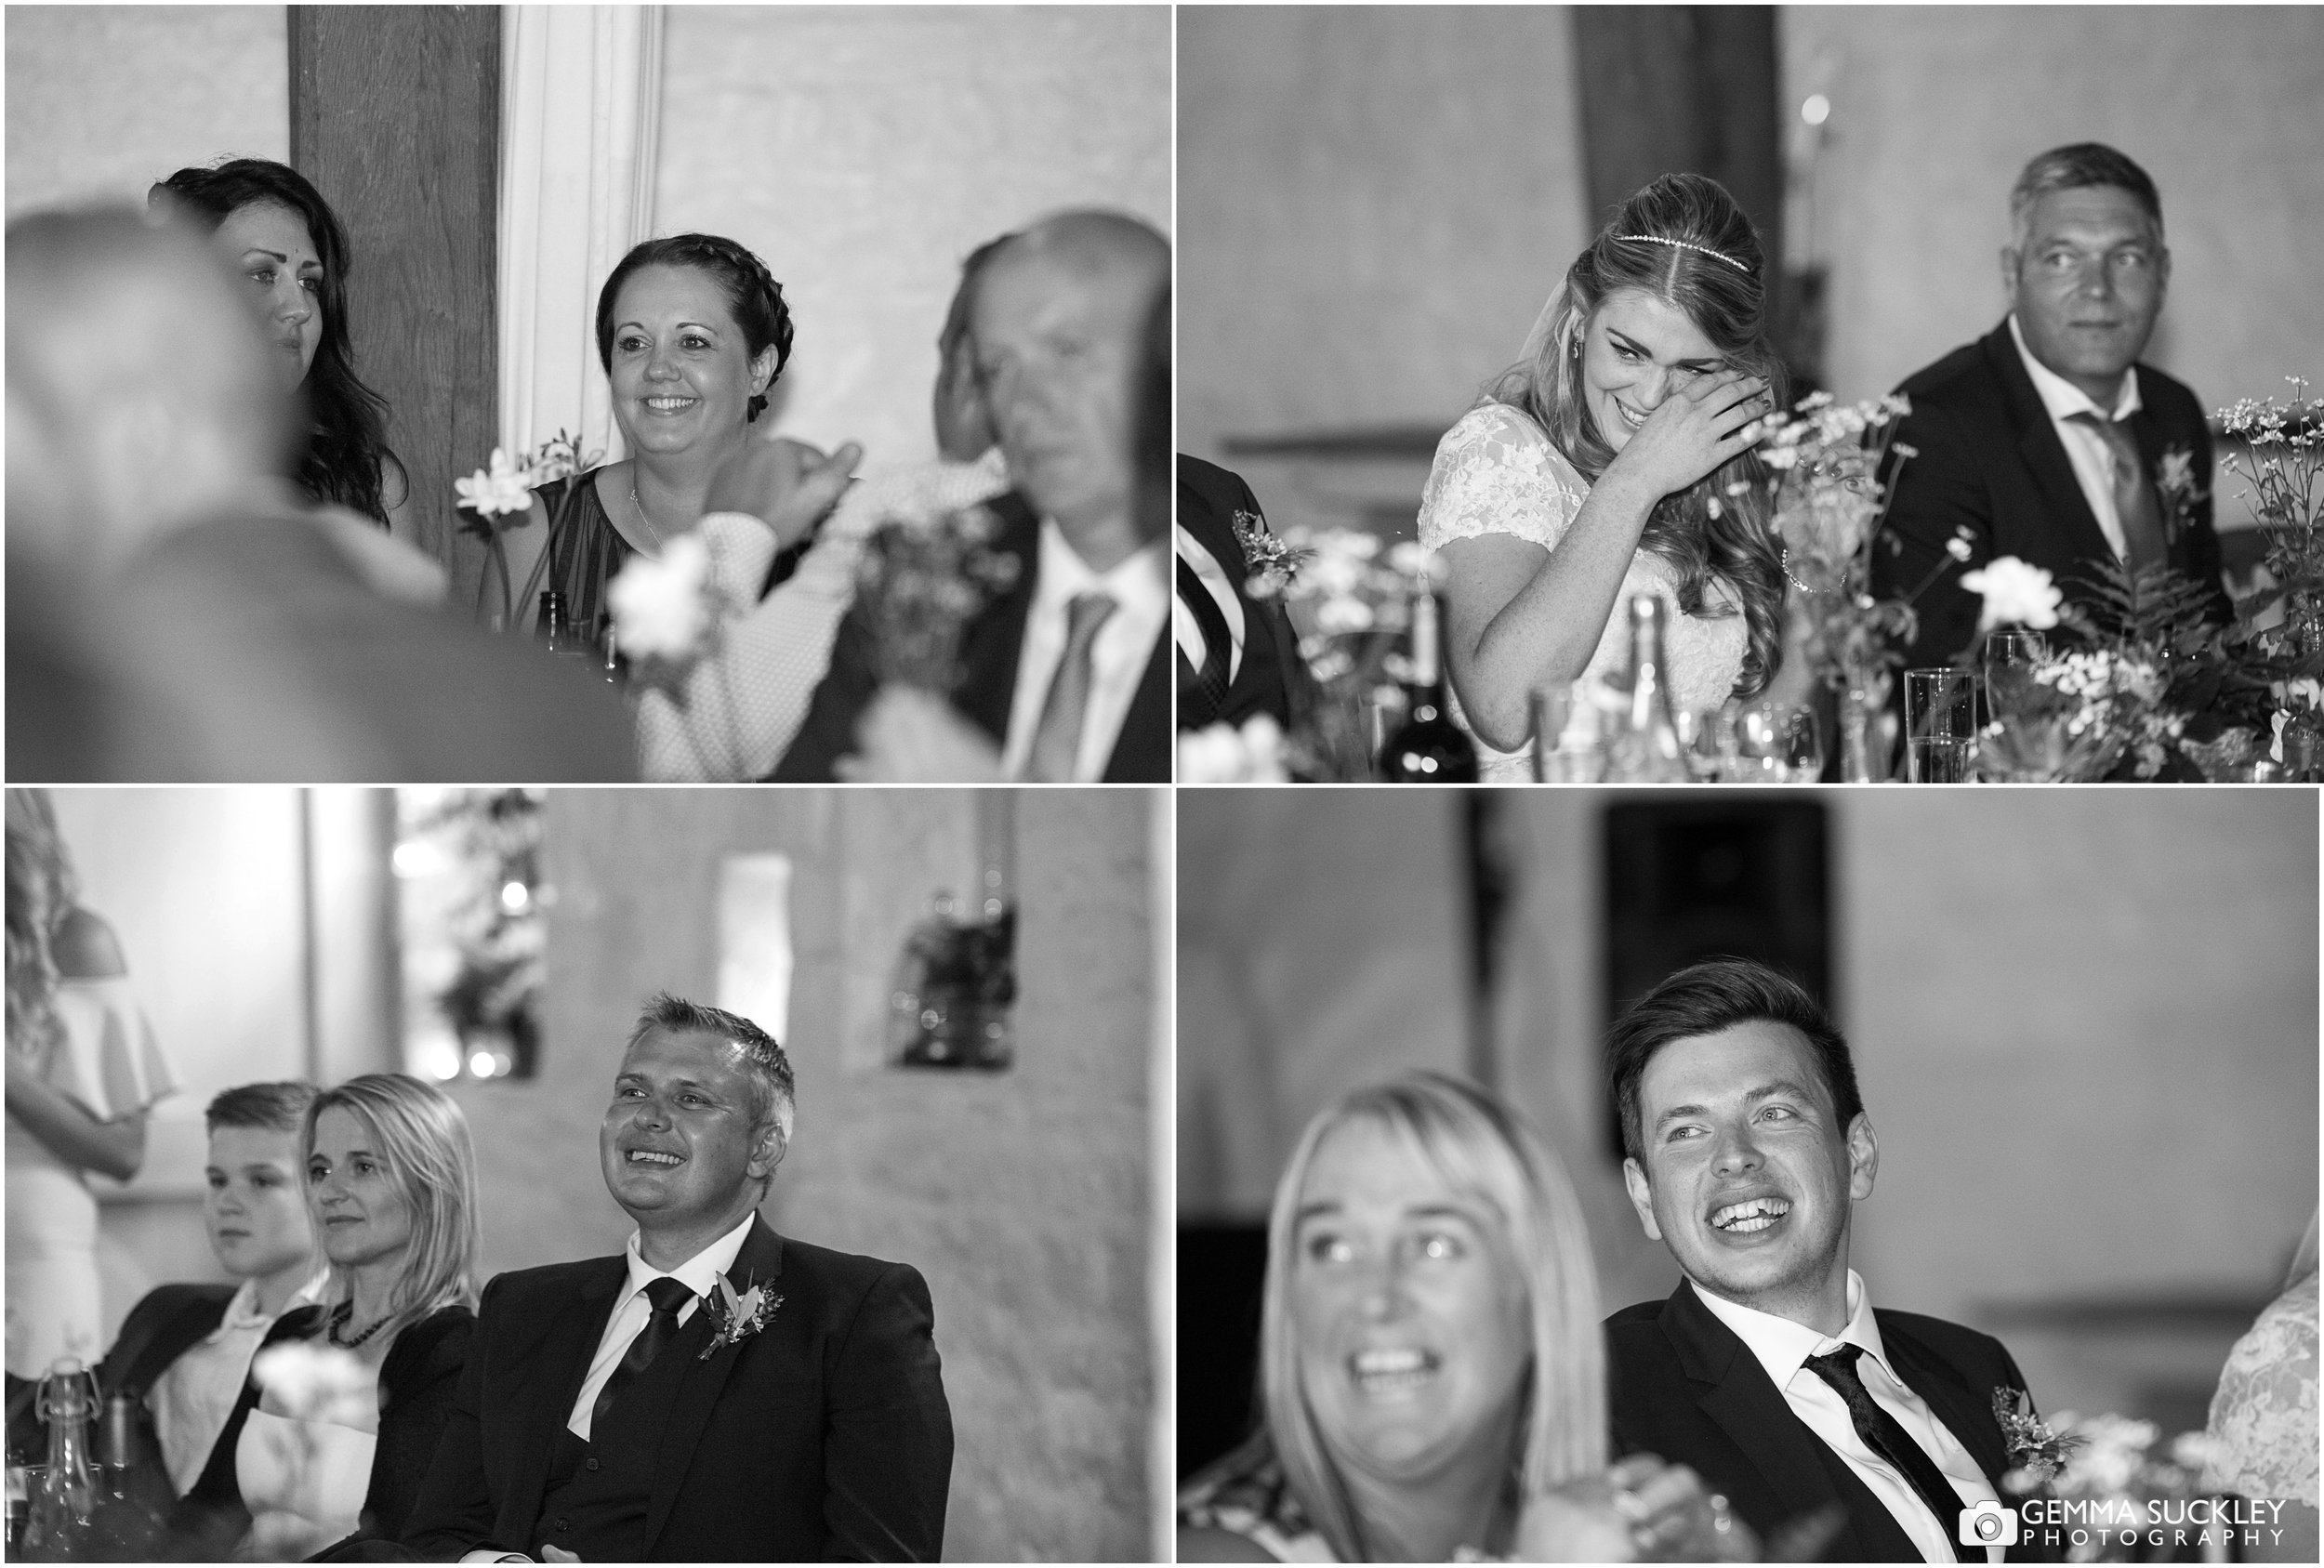 weddings-at-east-riddlesden-hall-speeches-5©gemmasuckleyphotography.jpg